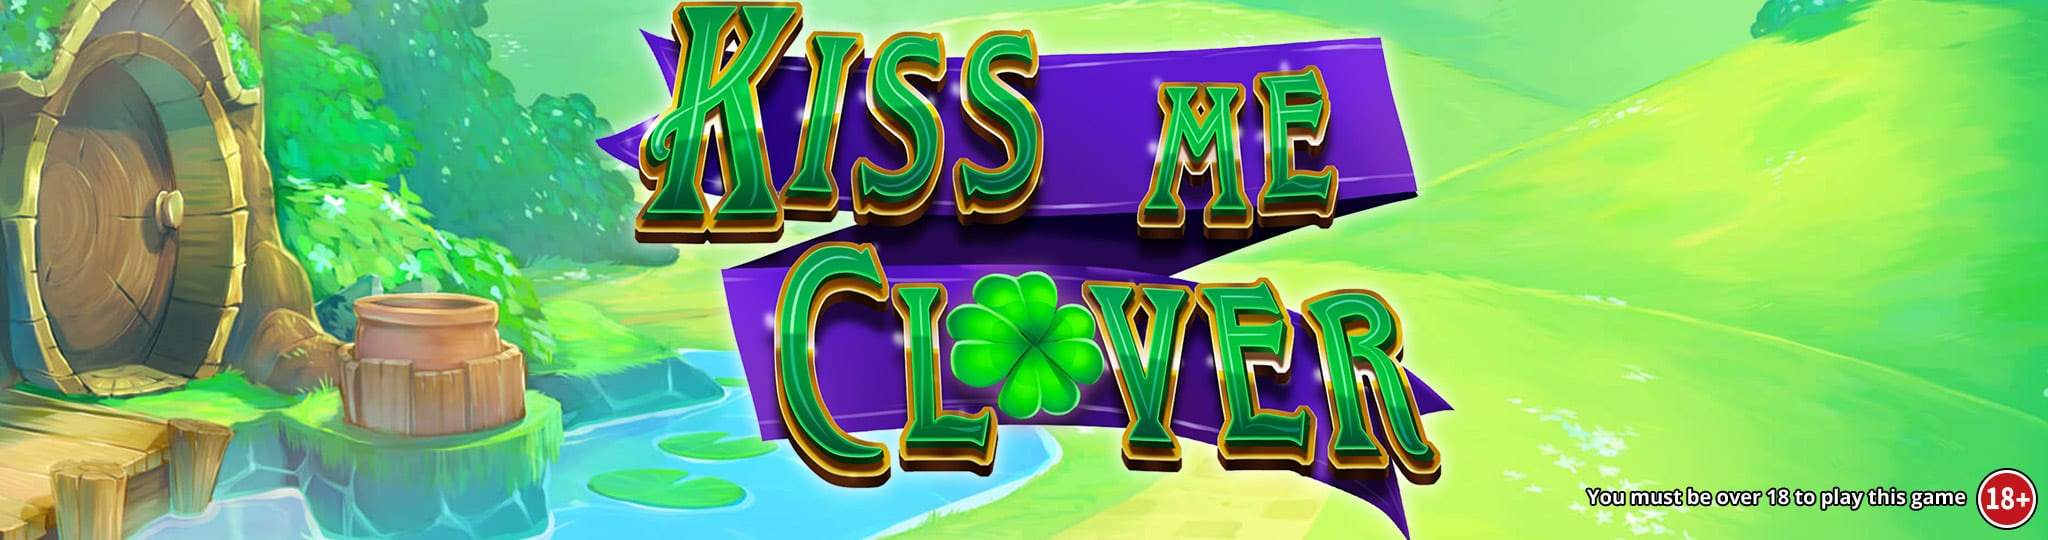 kiss me clover slots game logo